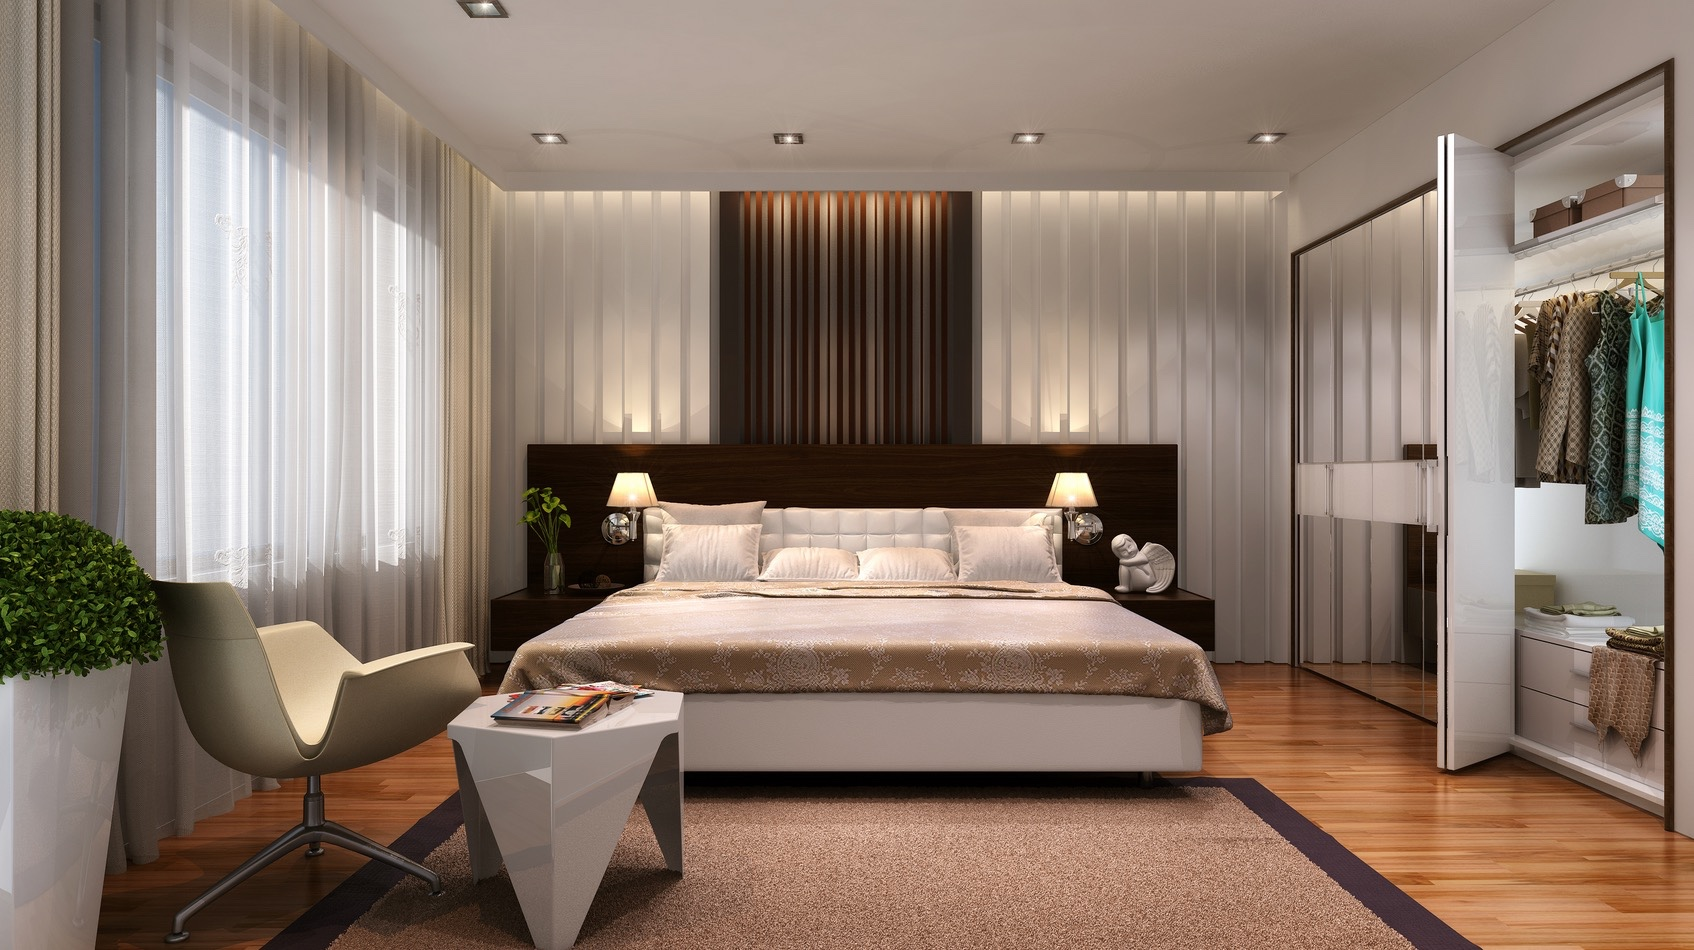 21 cool bedrooms for clean and simple design inspiration for Decoration interieur chambre adulte